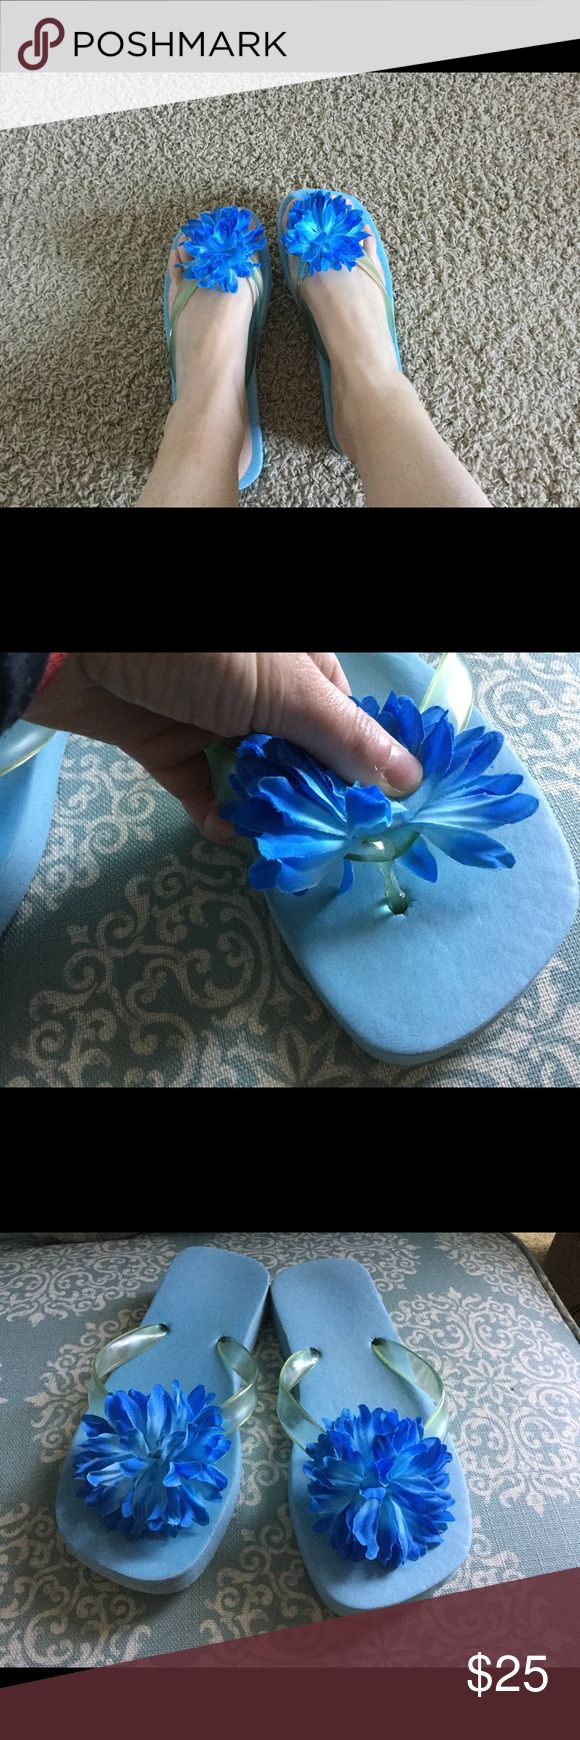 """Super duet flip flops 10 The """"thing"""" that is between the toes has been trimmed"""" as it bothered my feet otherwise Great condition, perfect for the summer,❌NOT lilly but LILLY STYLE ❗️❗️❗️❗️❌💕❌ Lilly Pulitzer Shoes Flats & Loafers"""